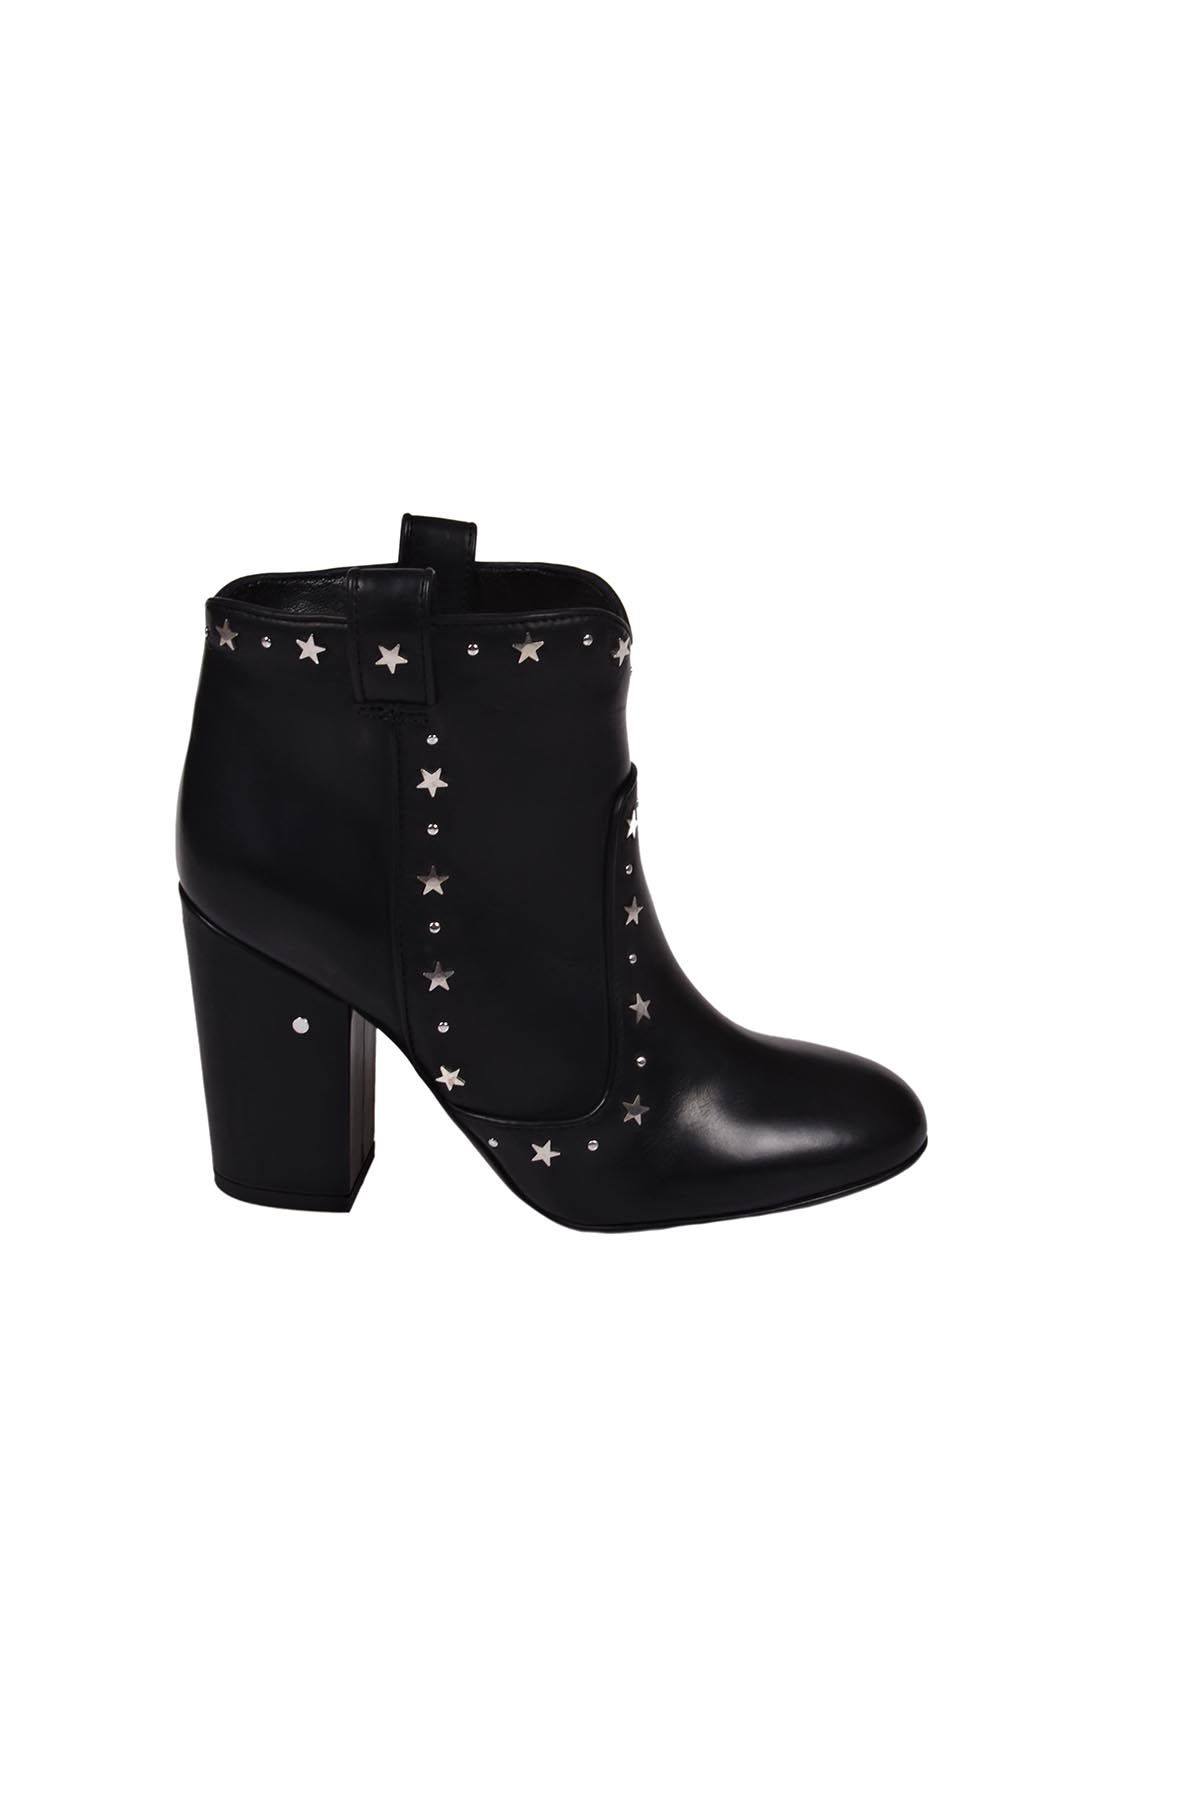 Laurence Dacade Peter Star Studded Boots